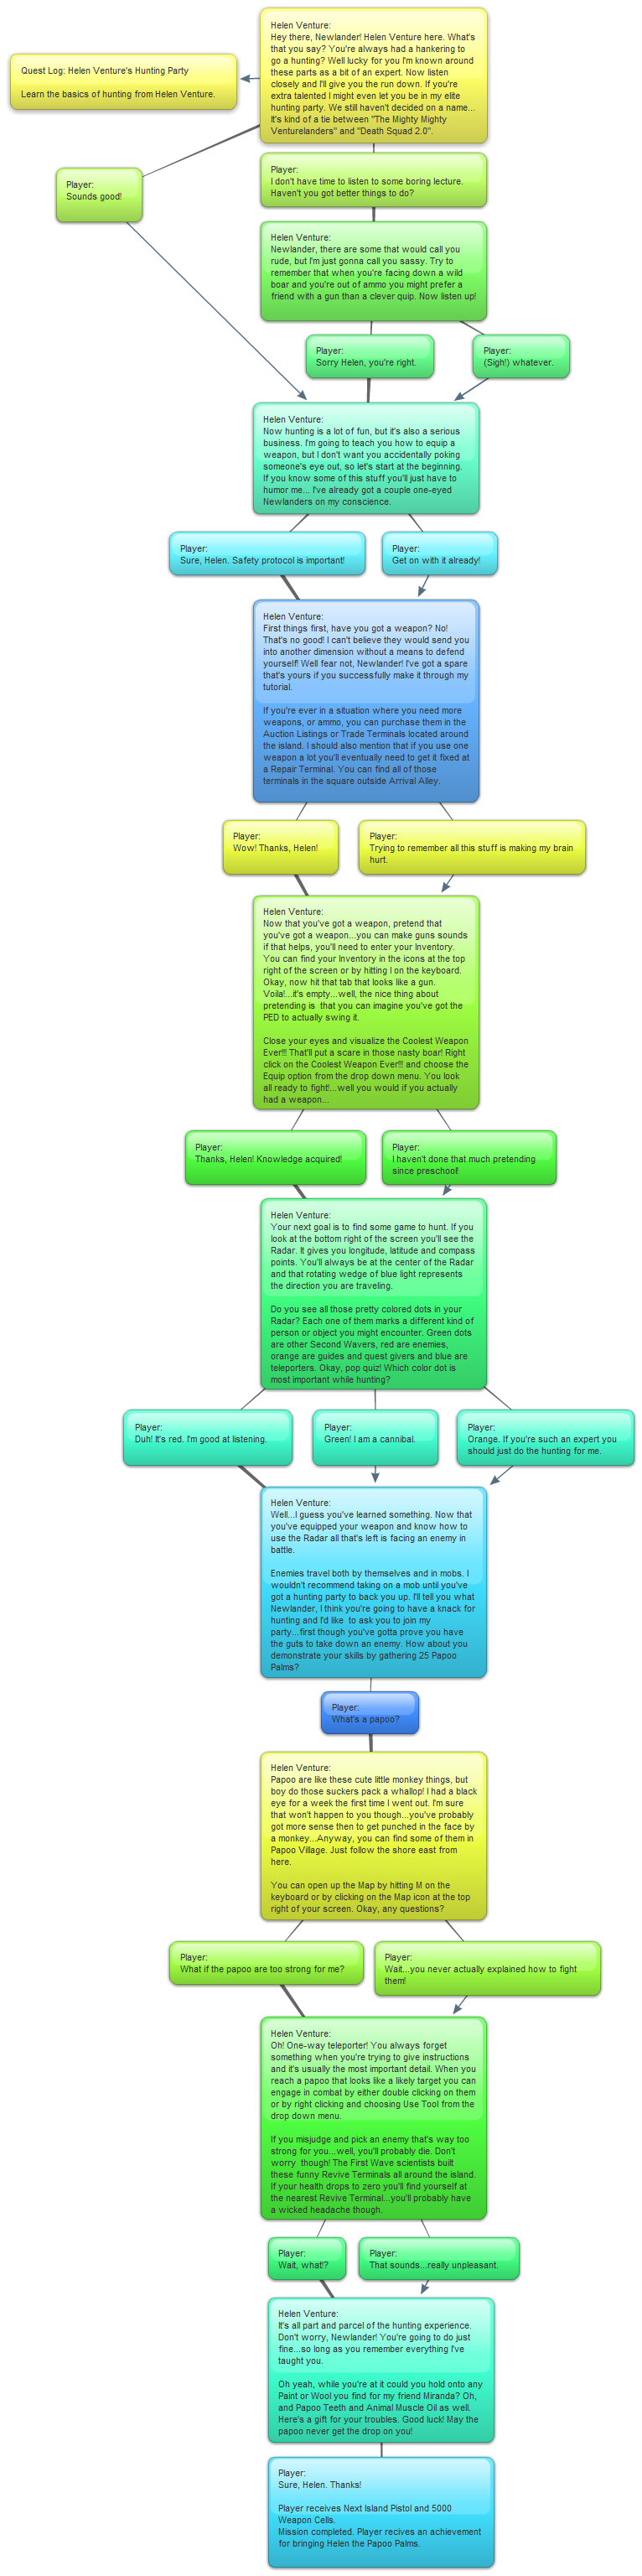 Mission Helen Ventures Hunting Party Walkthrough Flowchart.jpg